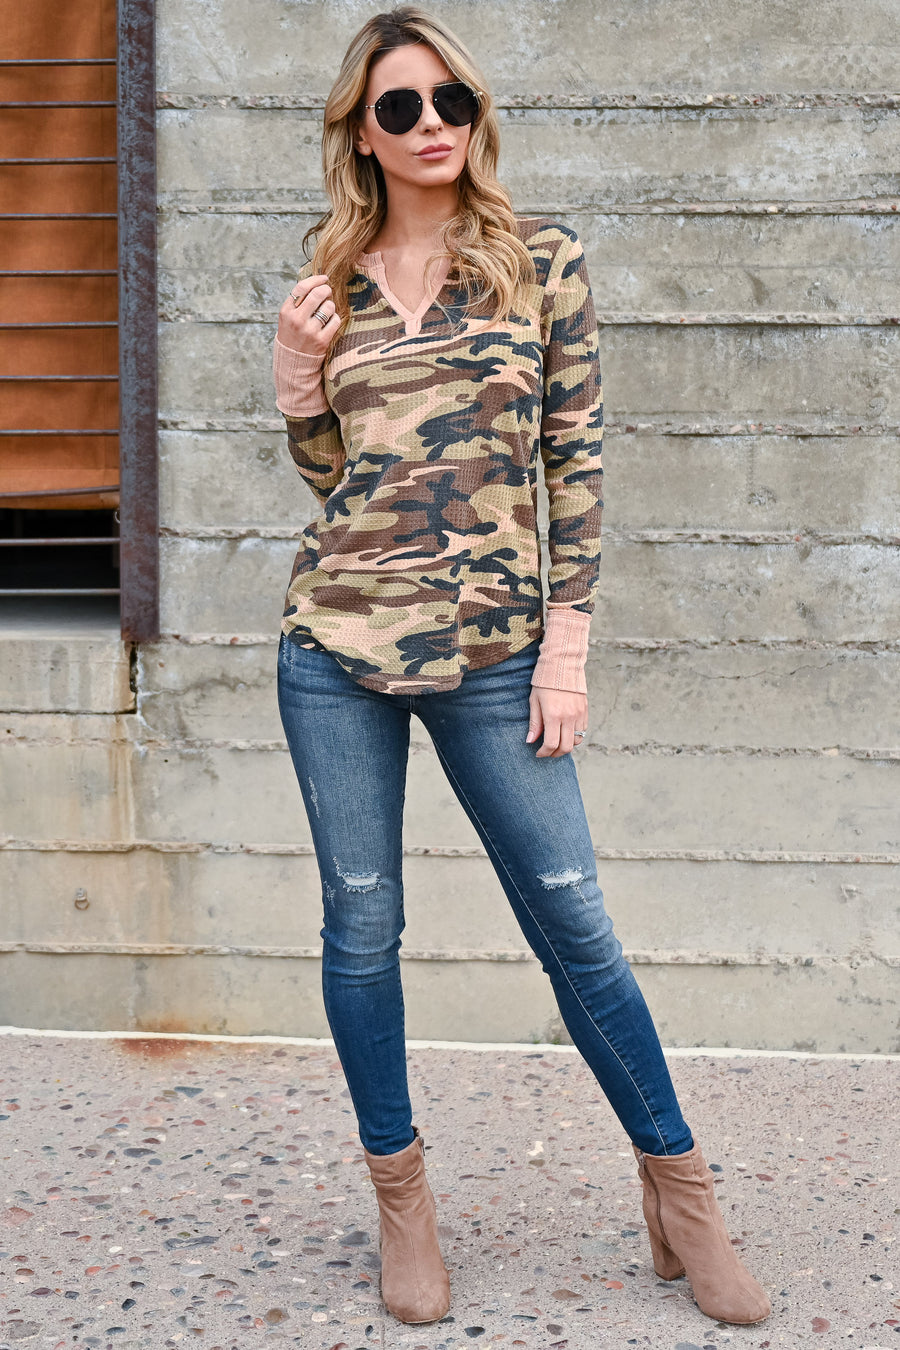 This Is It Long Sleeve Top - Camo women's casual long sleeve v-neck waffle knit top with pink contrast closet candy front